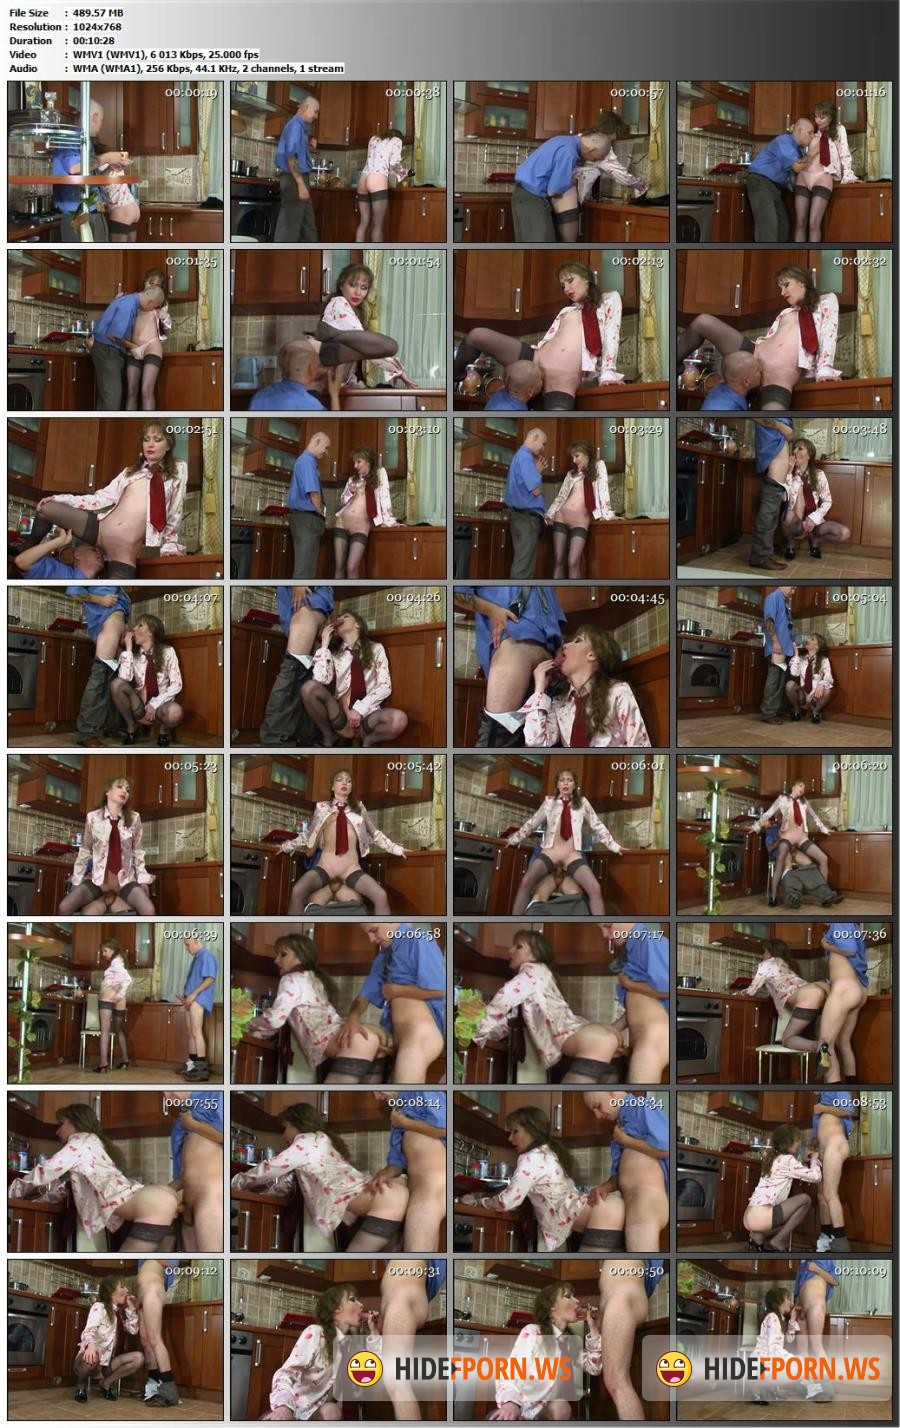 BoysLoveMatures.com - Leila, Benjamin - g553 [HD 768p]